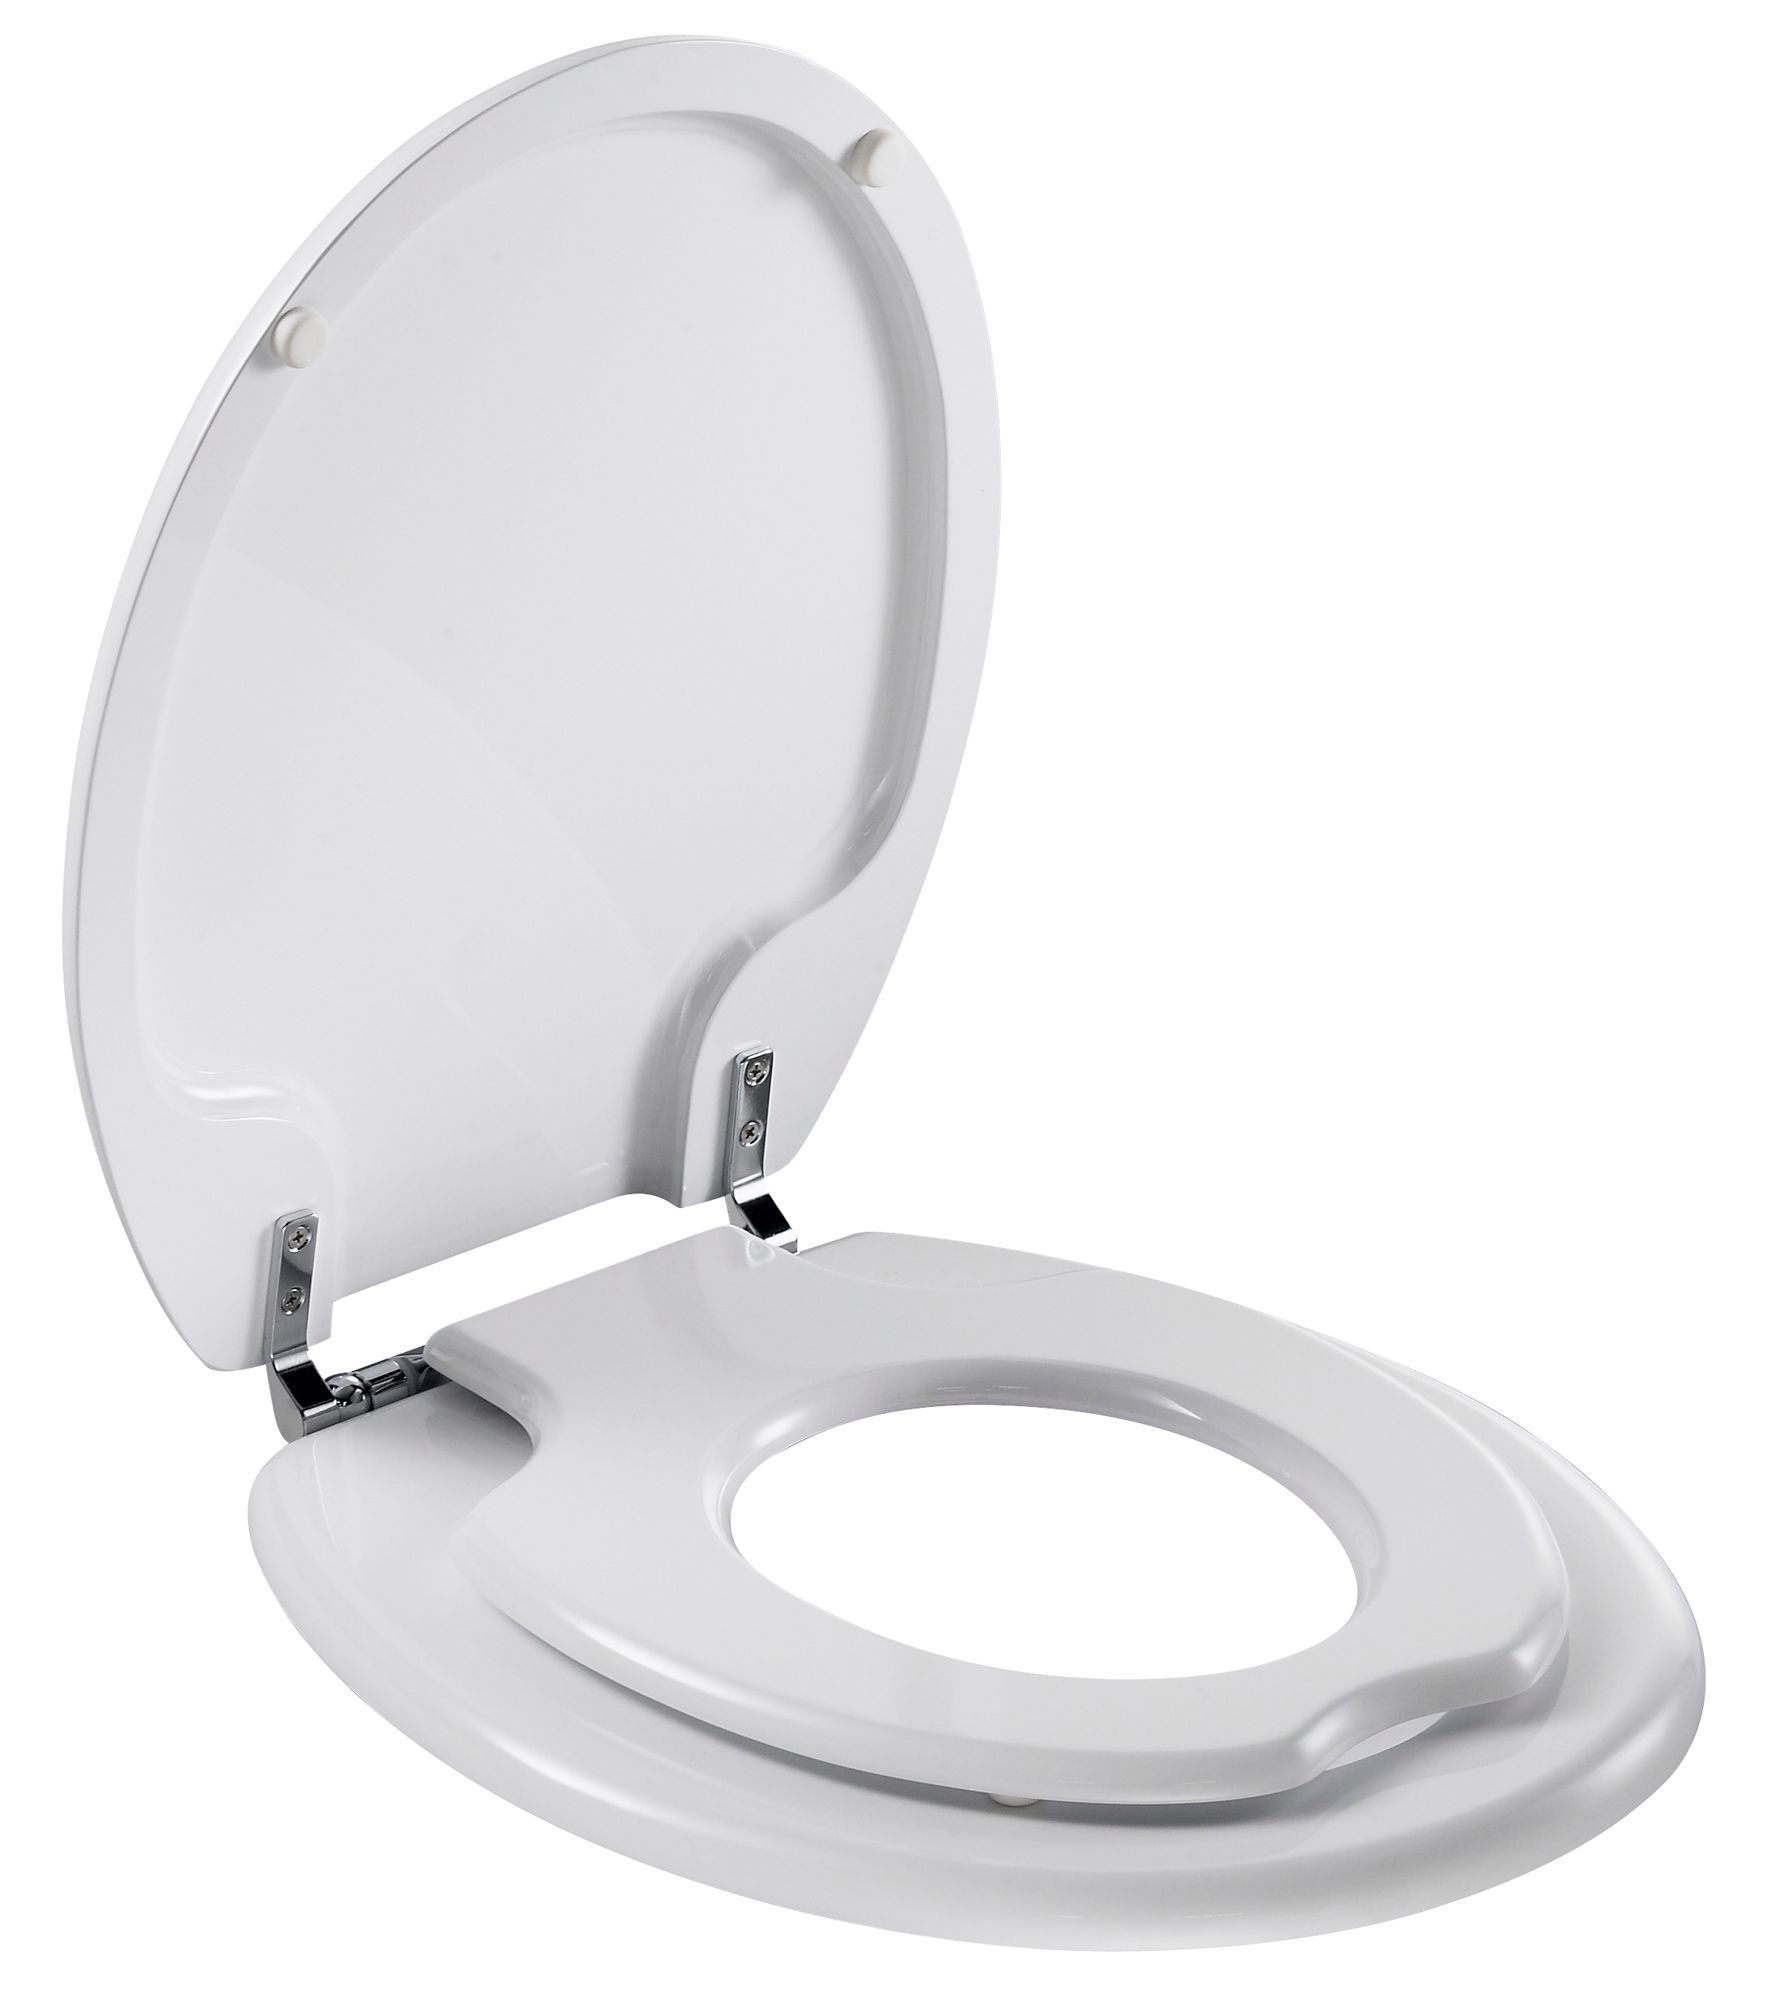 Bemis Dallas White Child & adult Toilet seat | Departments ...